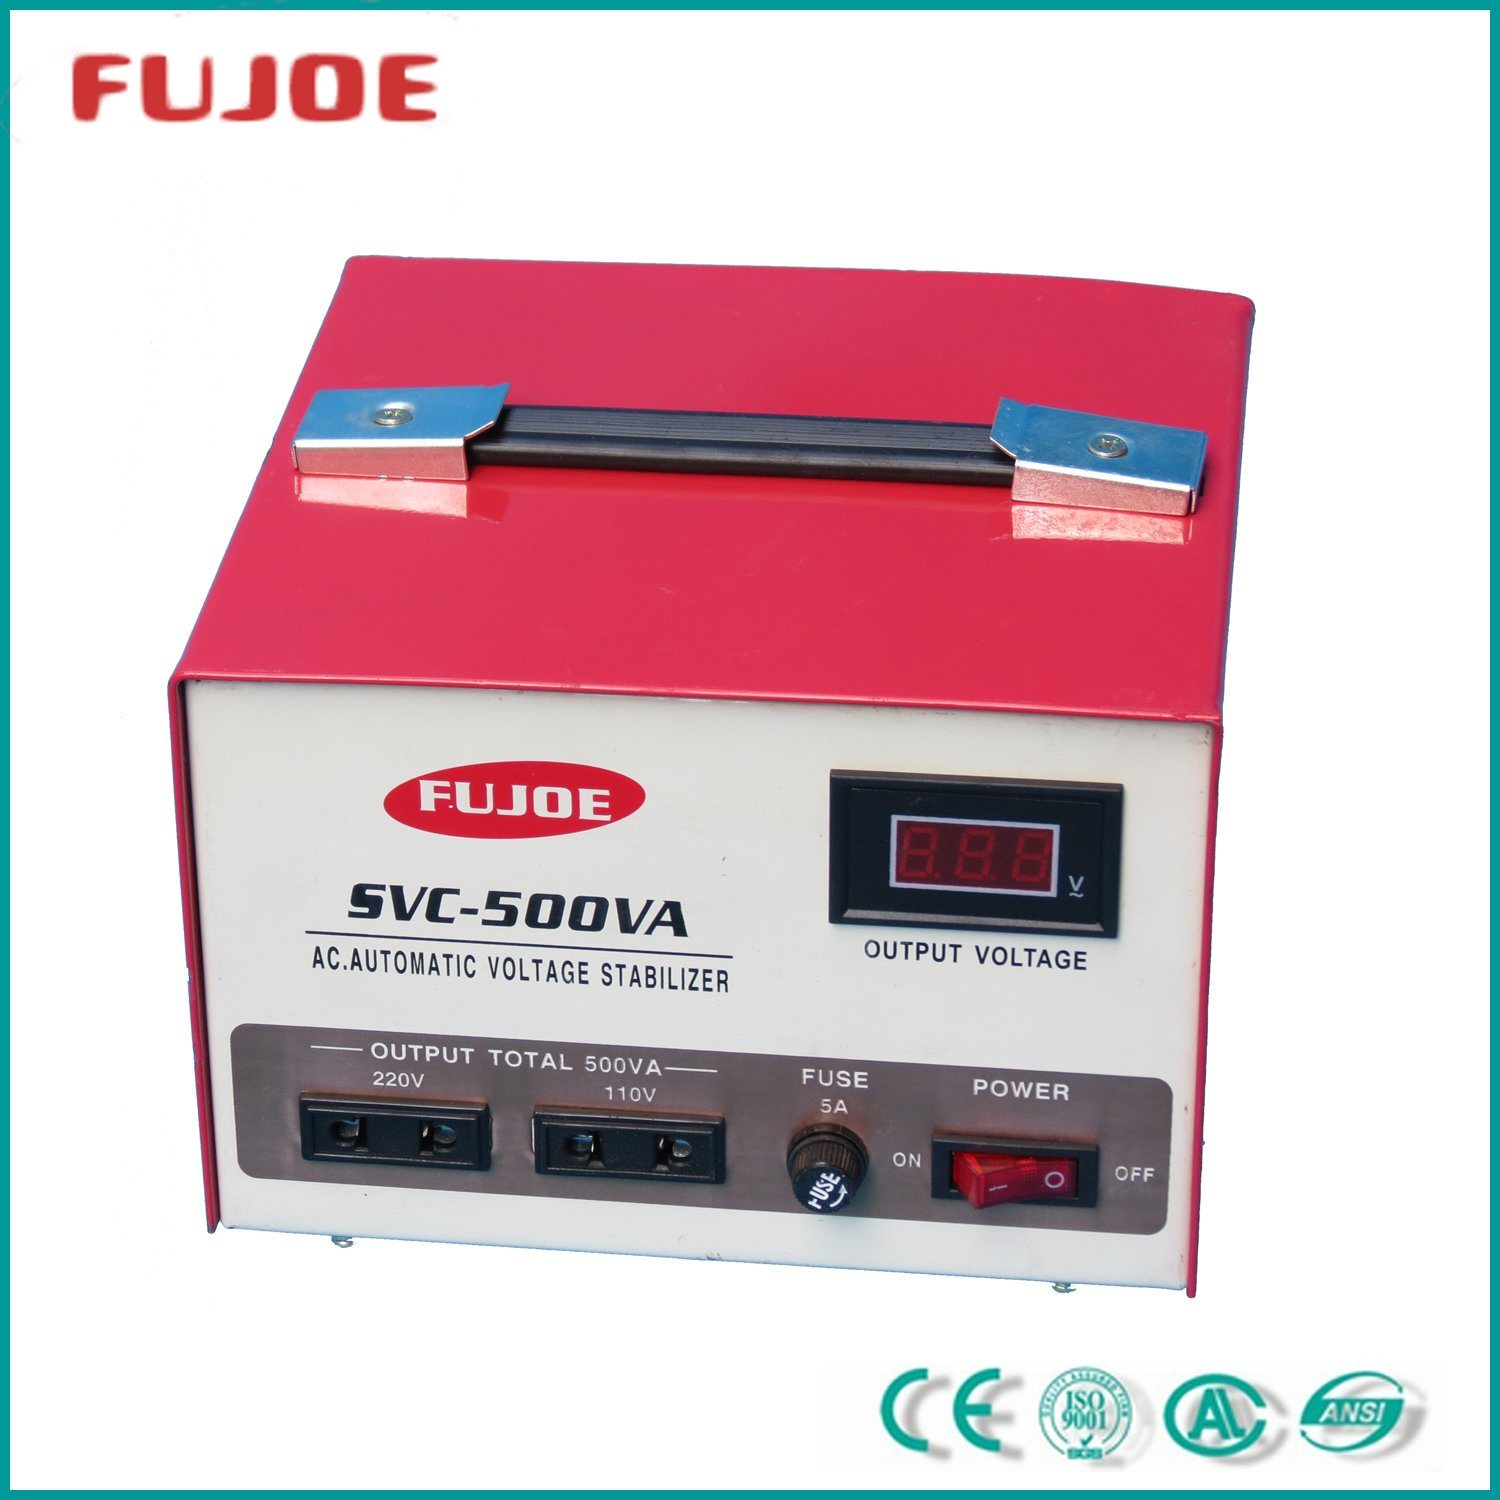 Power Supply Single Phase SVC-500va Automatic Voltage Stabilizer